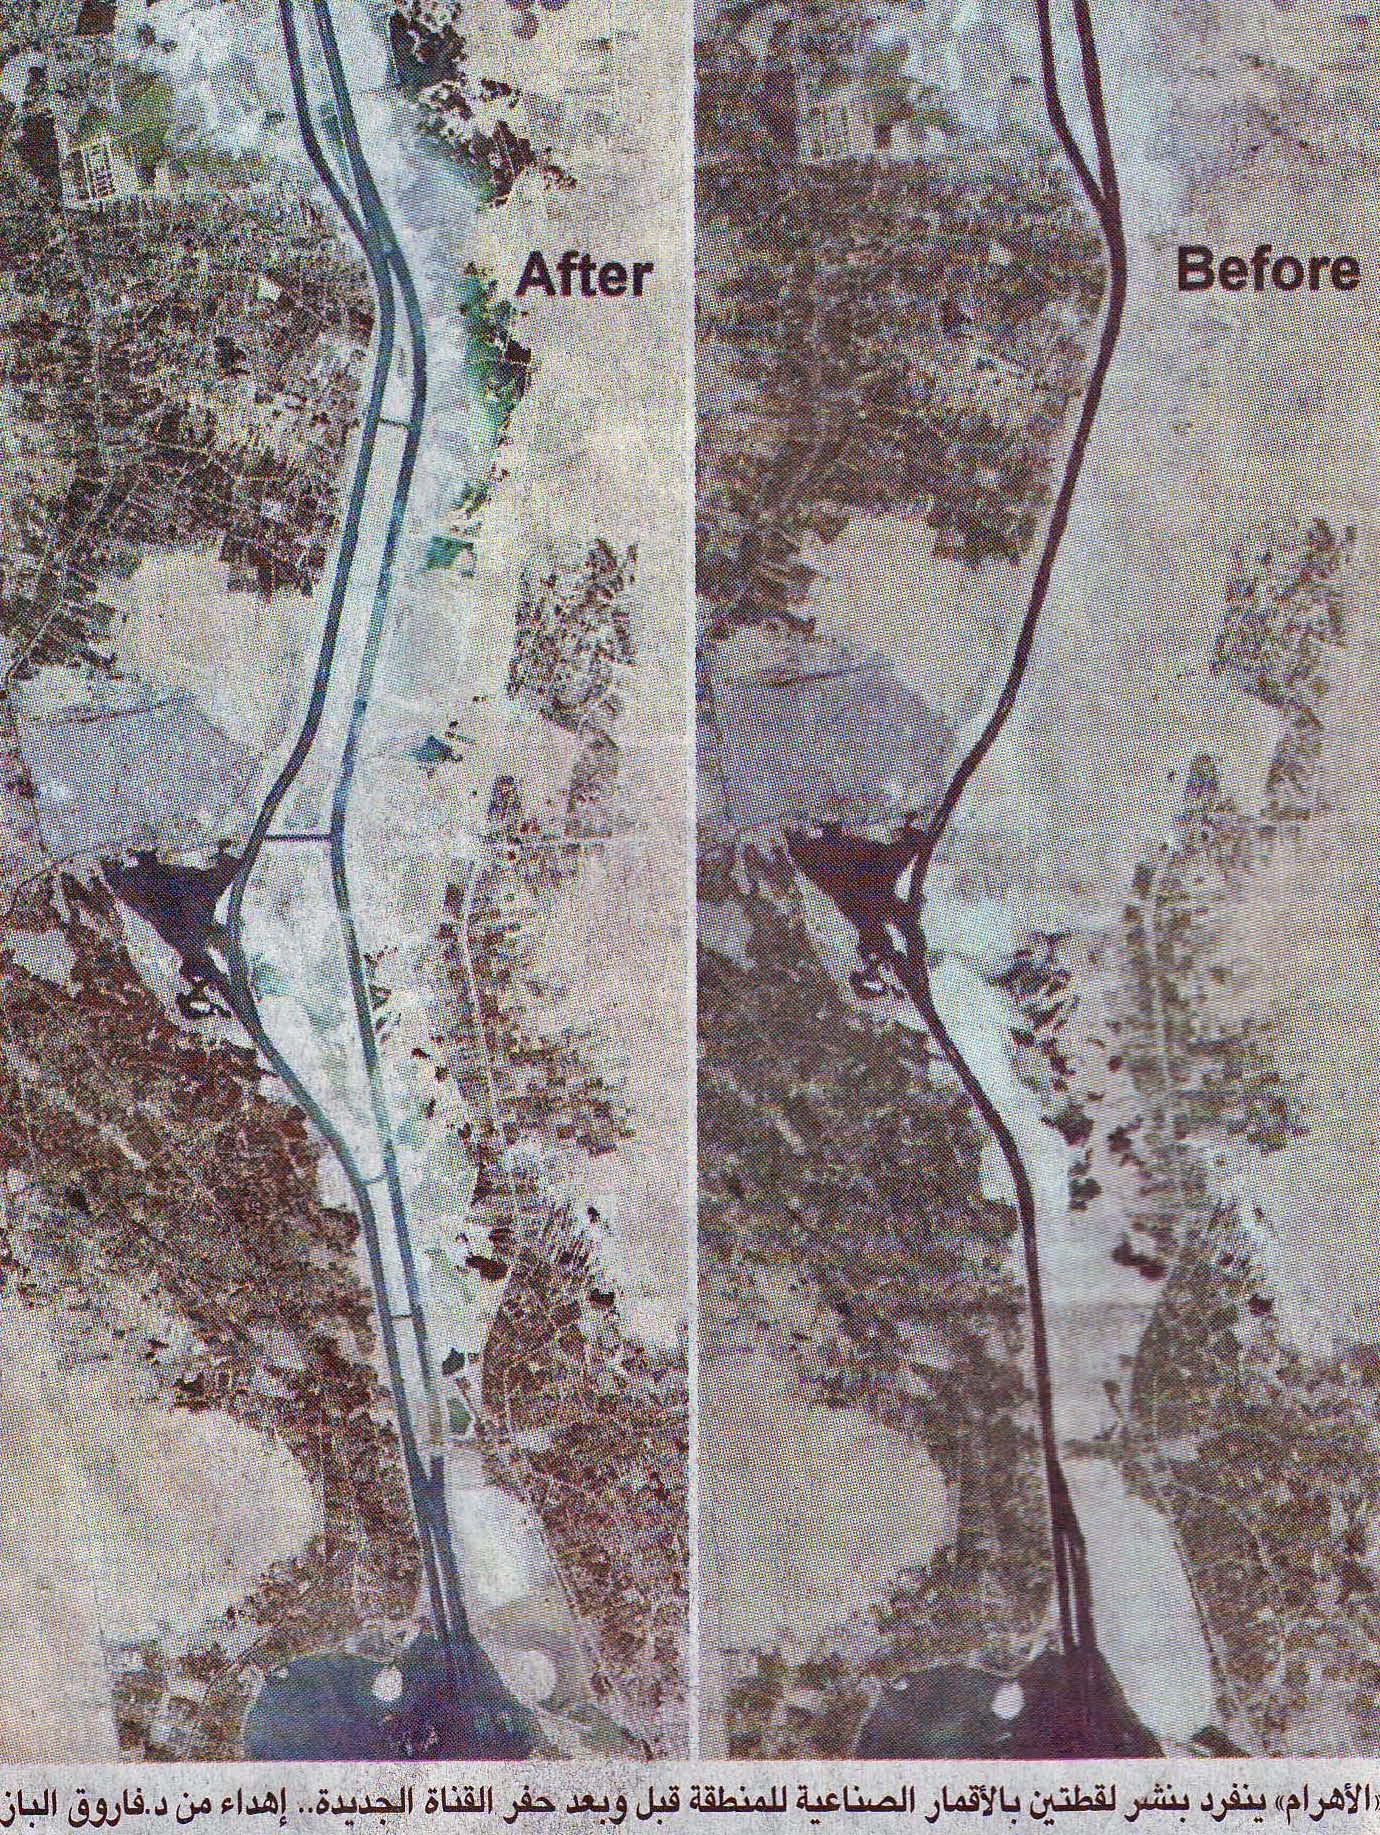 Suez Canal, before and after widening